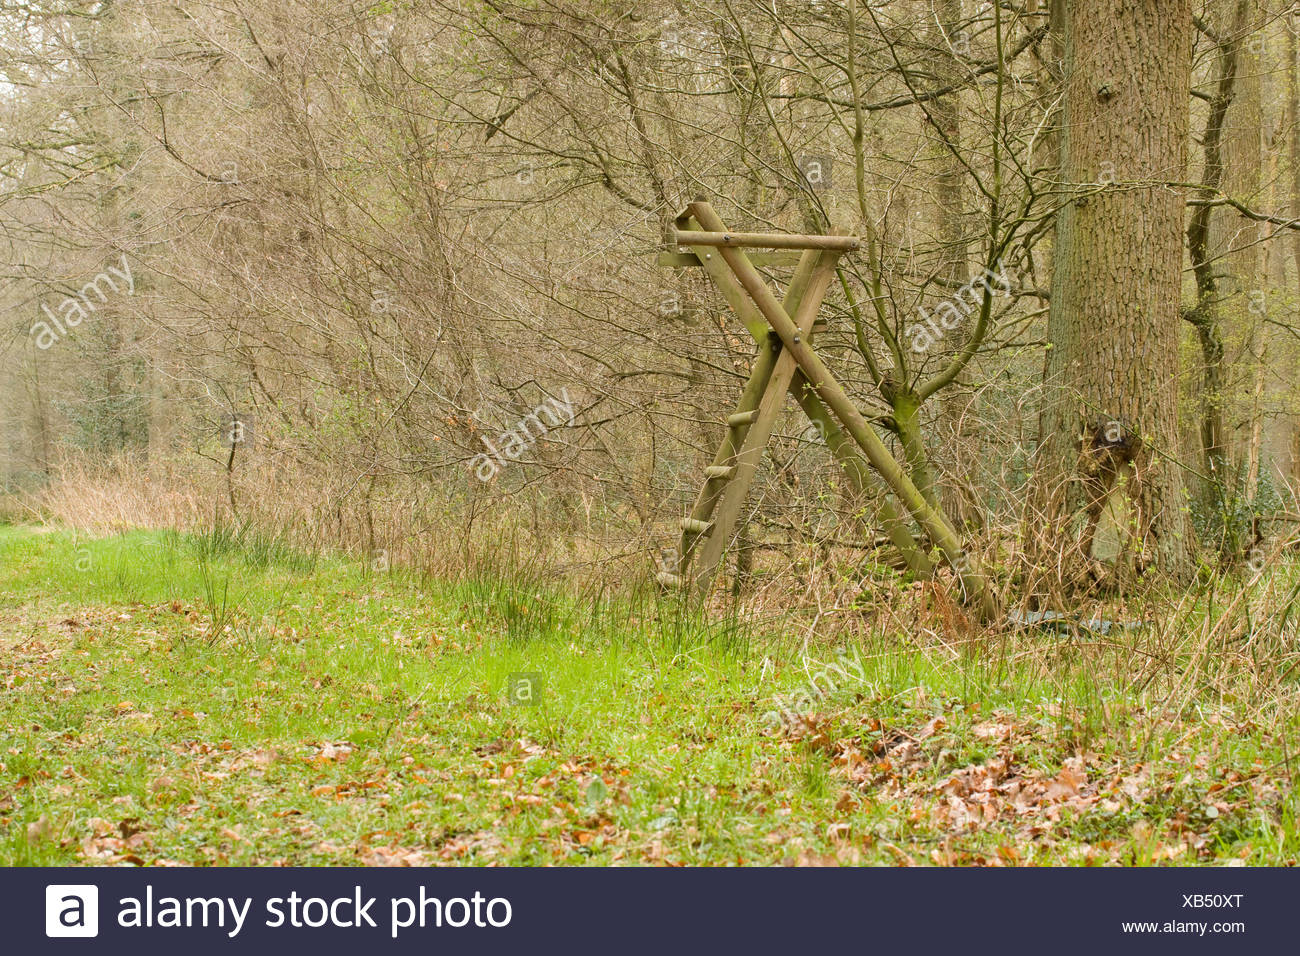 Een hoogzit wordt in Duitsland veel gebruikt voor observatie en jacht. Elevated position for hunting and observing game. - Stock Image